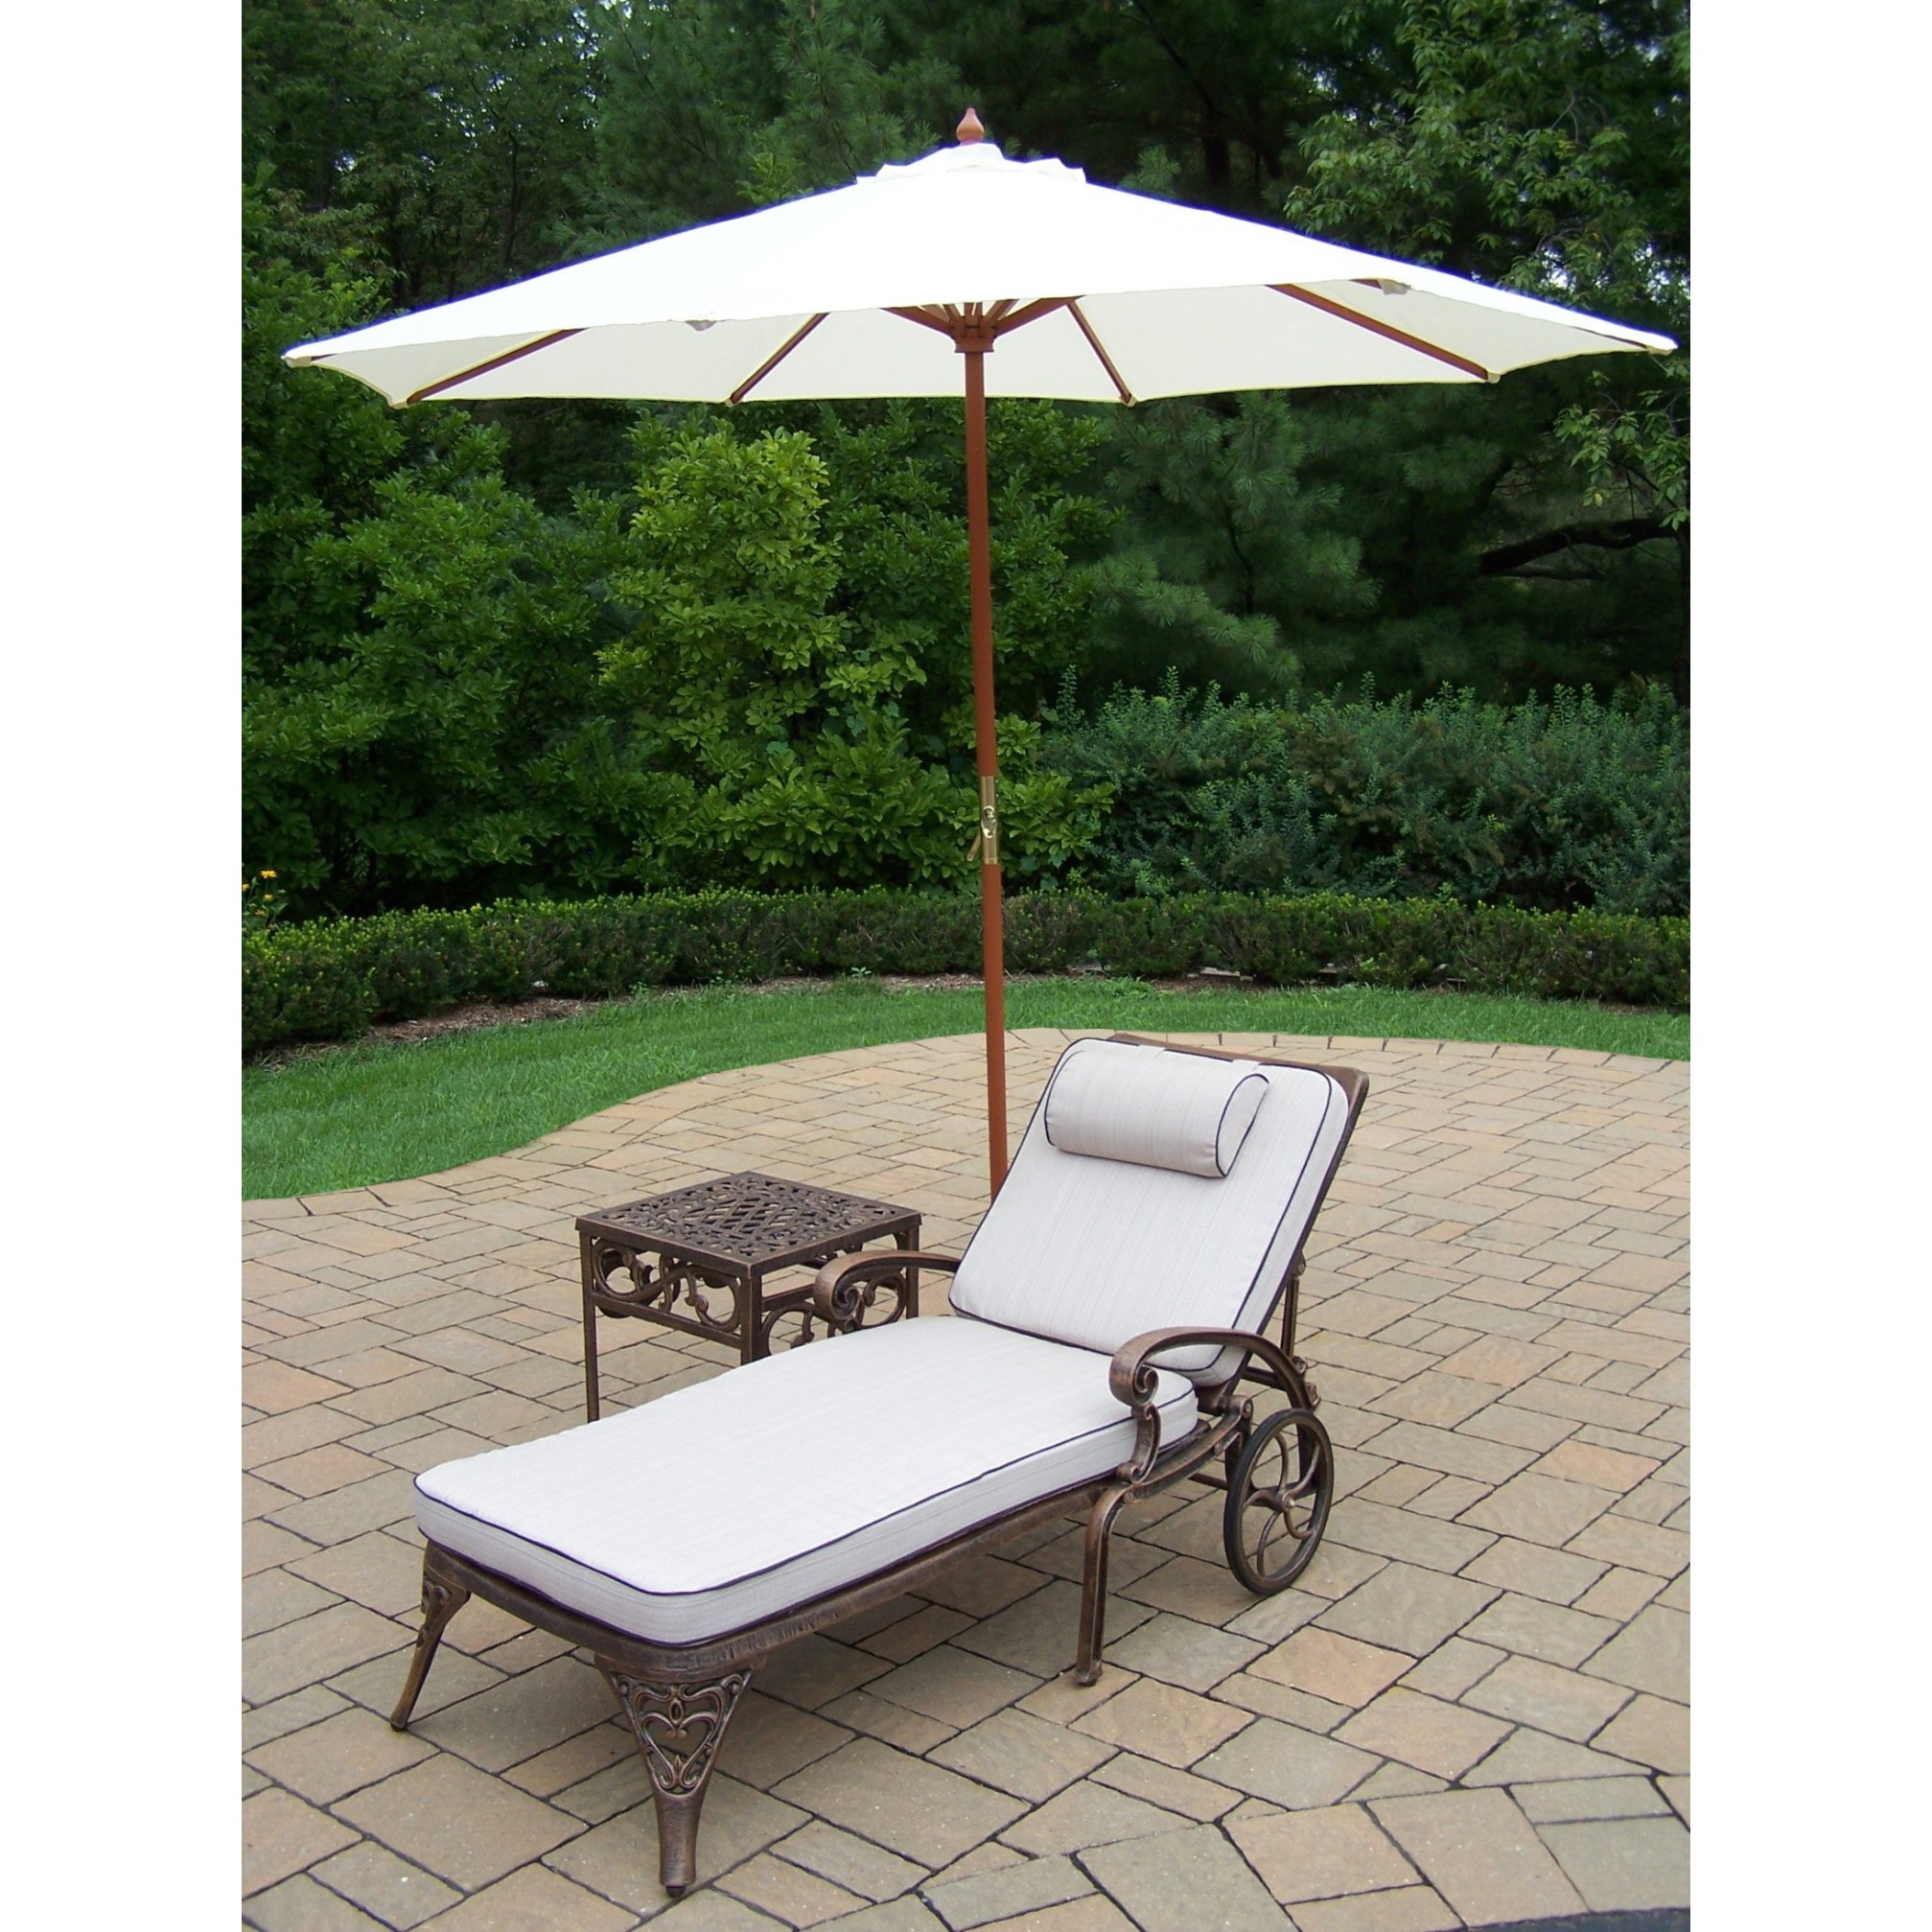 dakota cast aluminum white umbrella lounge set free shipping with cushioned wheeled chaise square side table and wooden stand outdoor today wicker furniture curved coffee